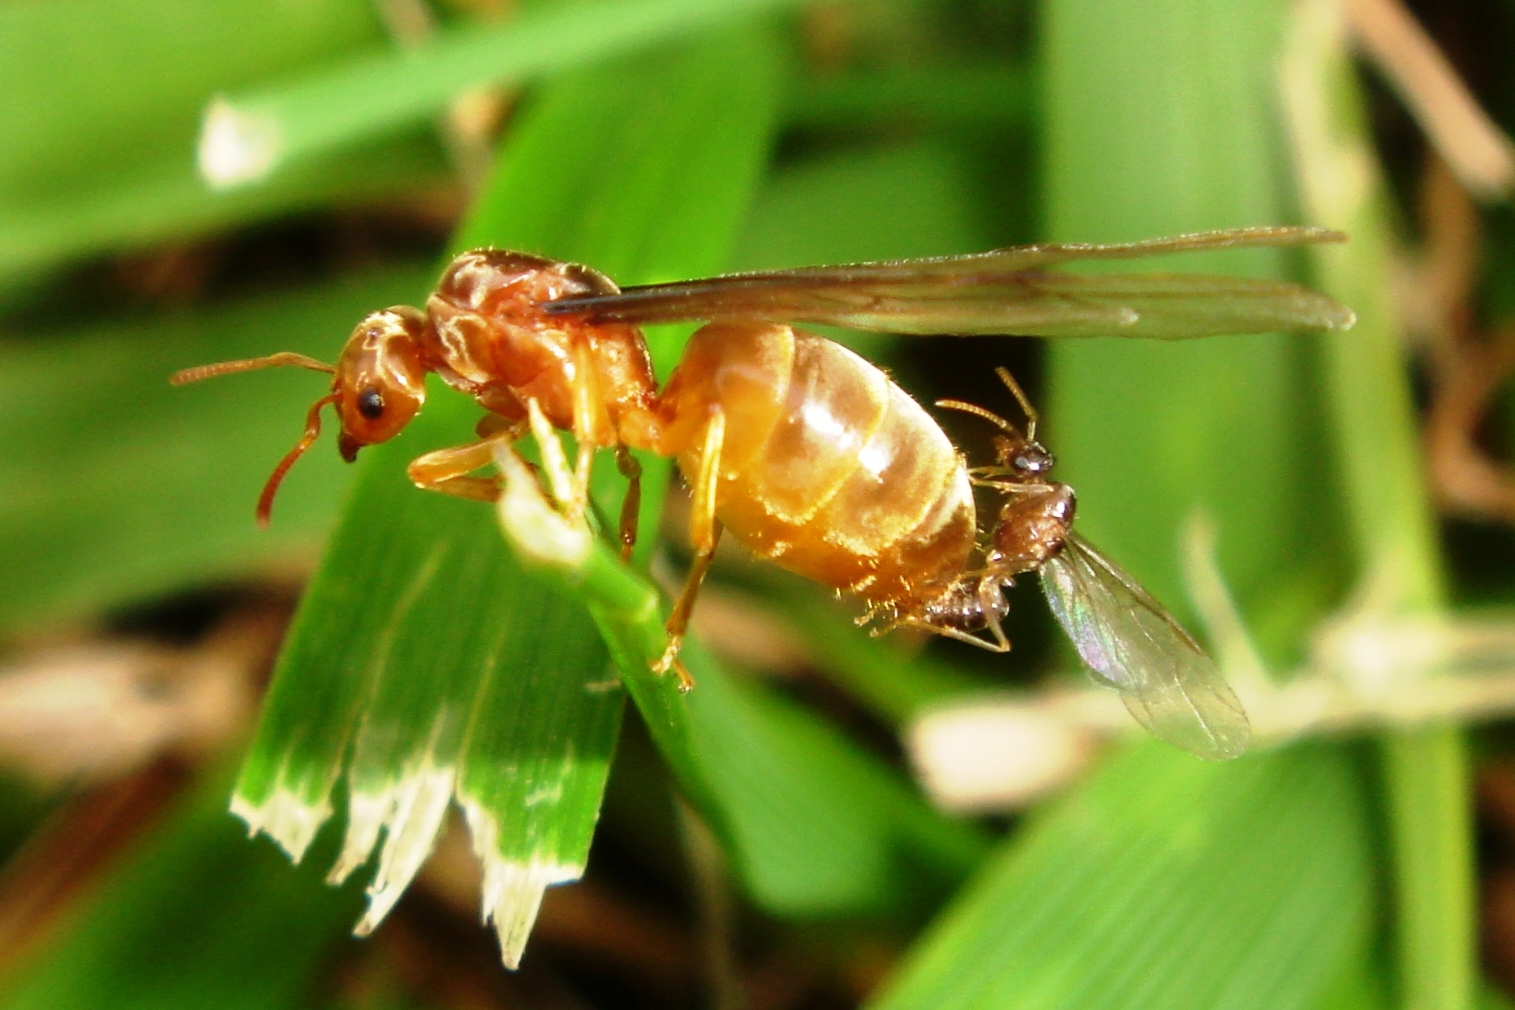 Ants mating